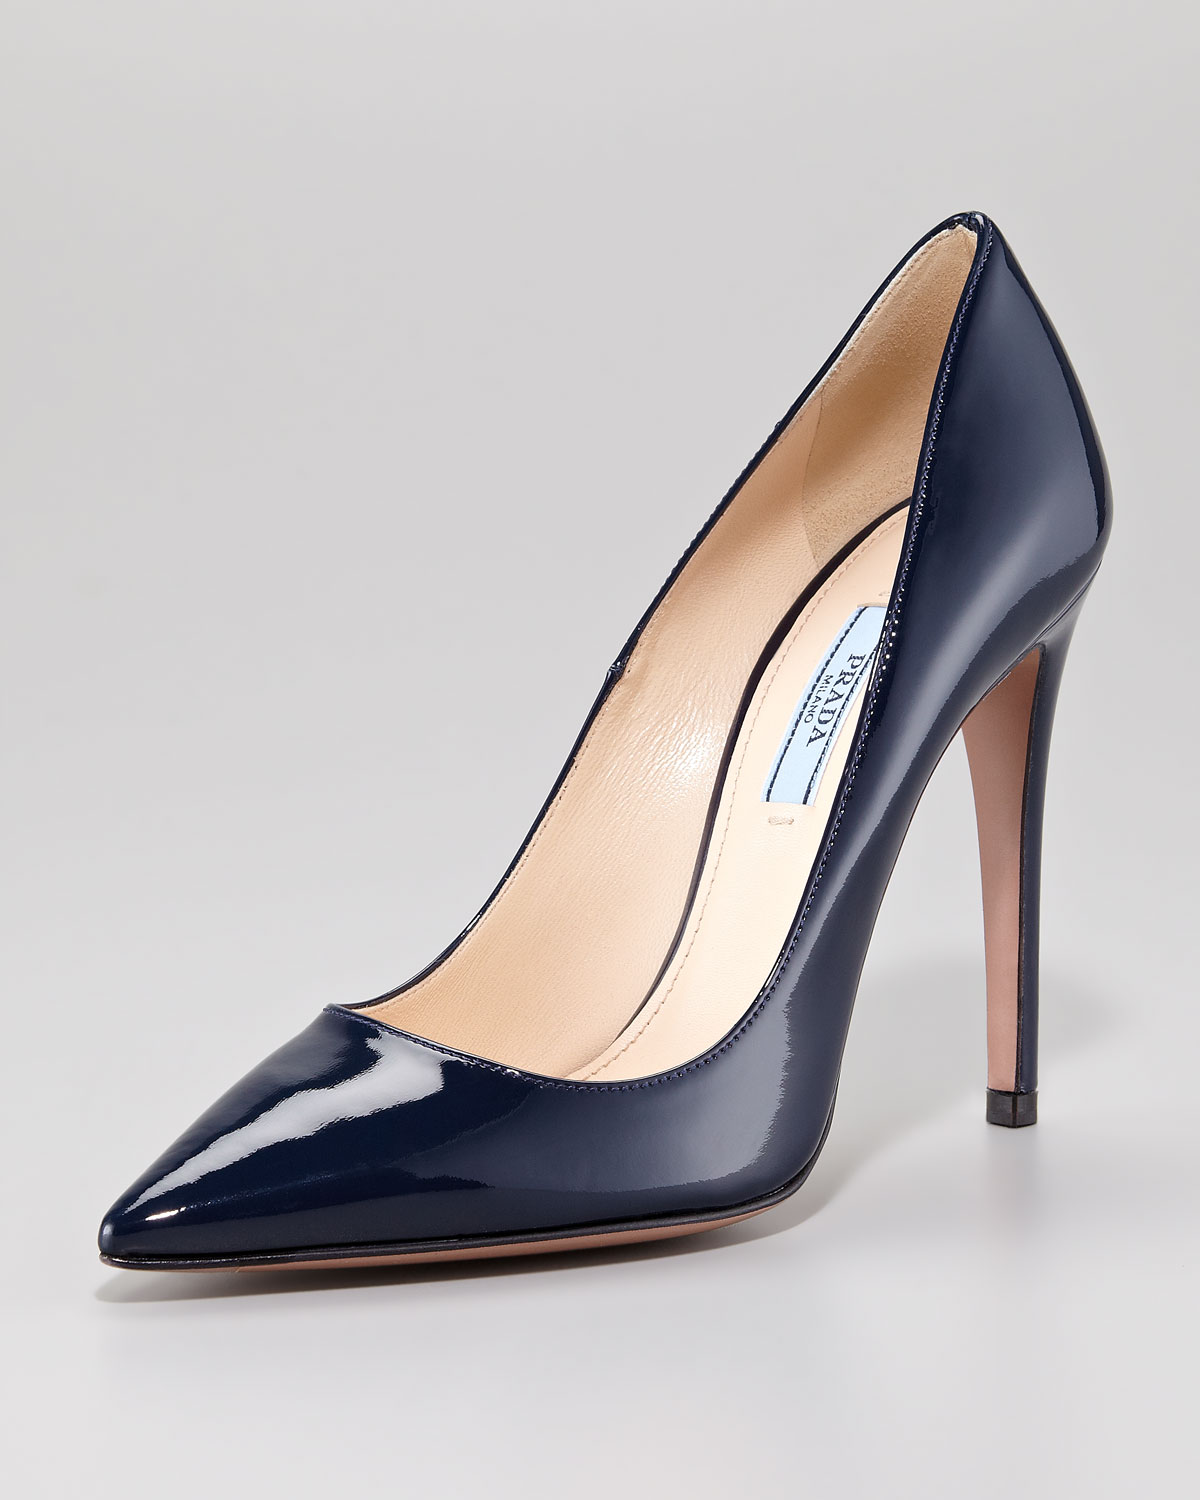 b8918ee3f6 Prada Pointed Patent Leather Pump in Blue - Lyst